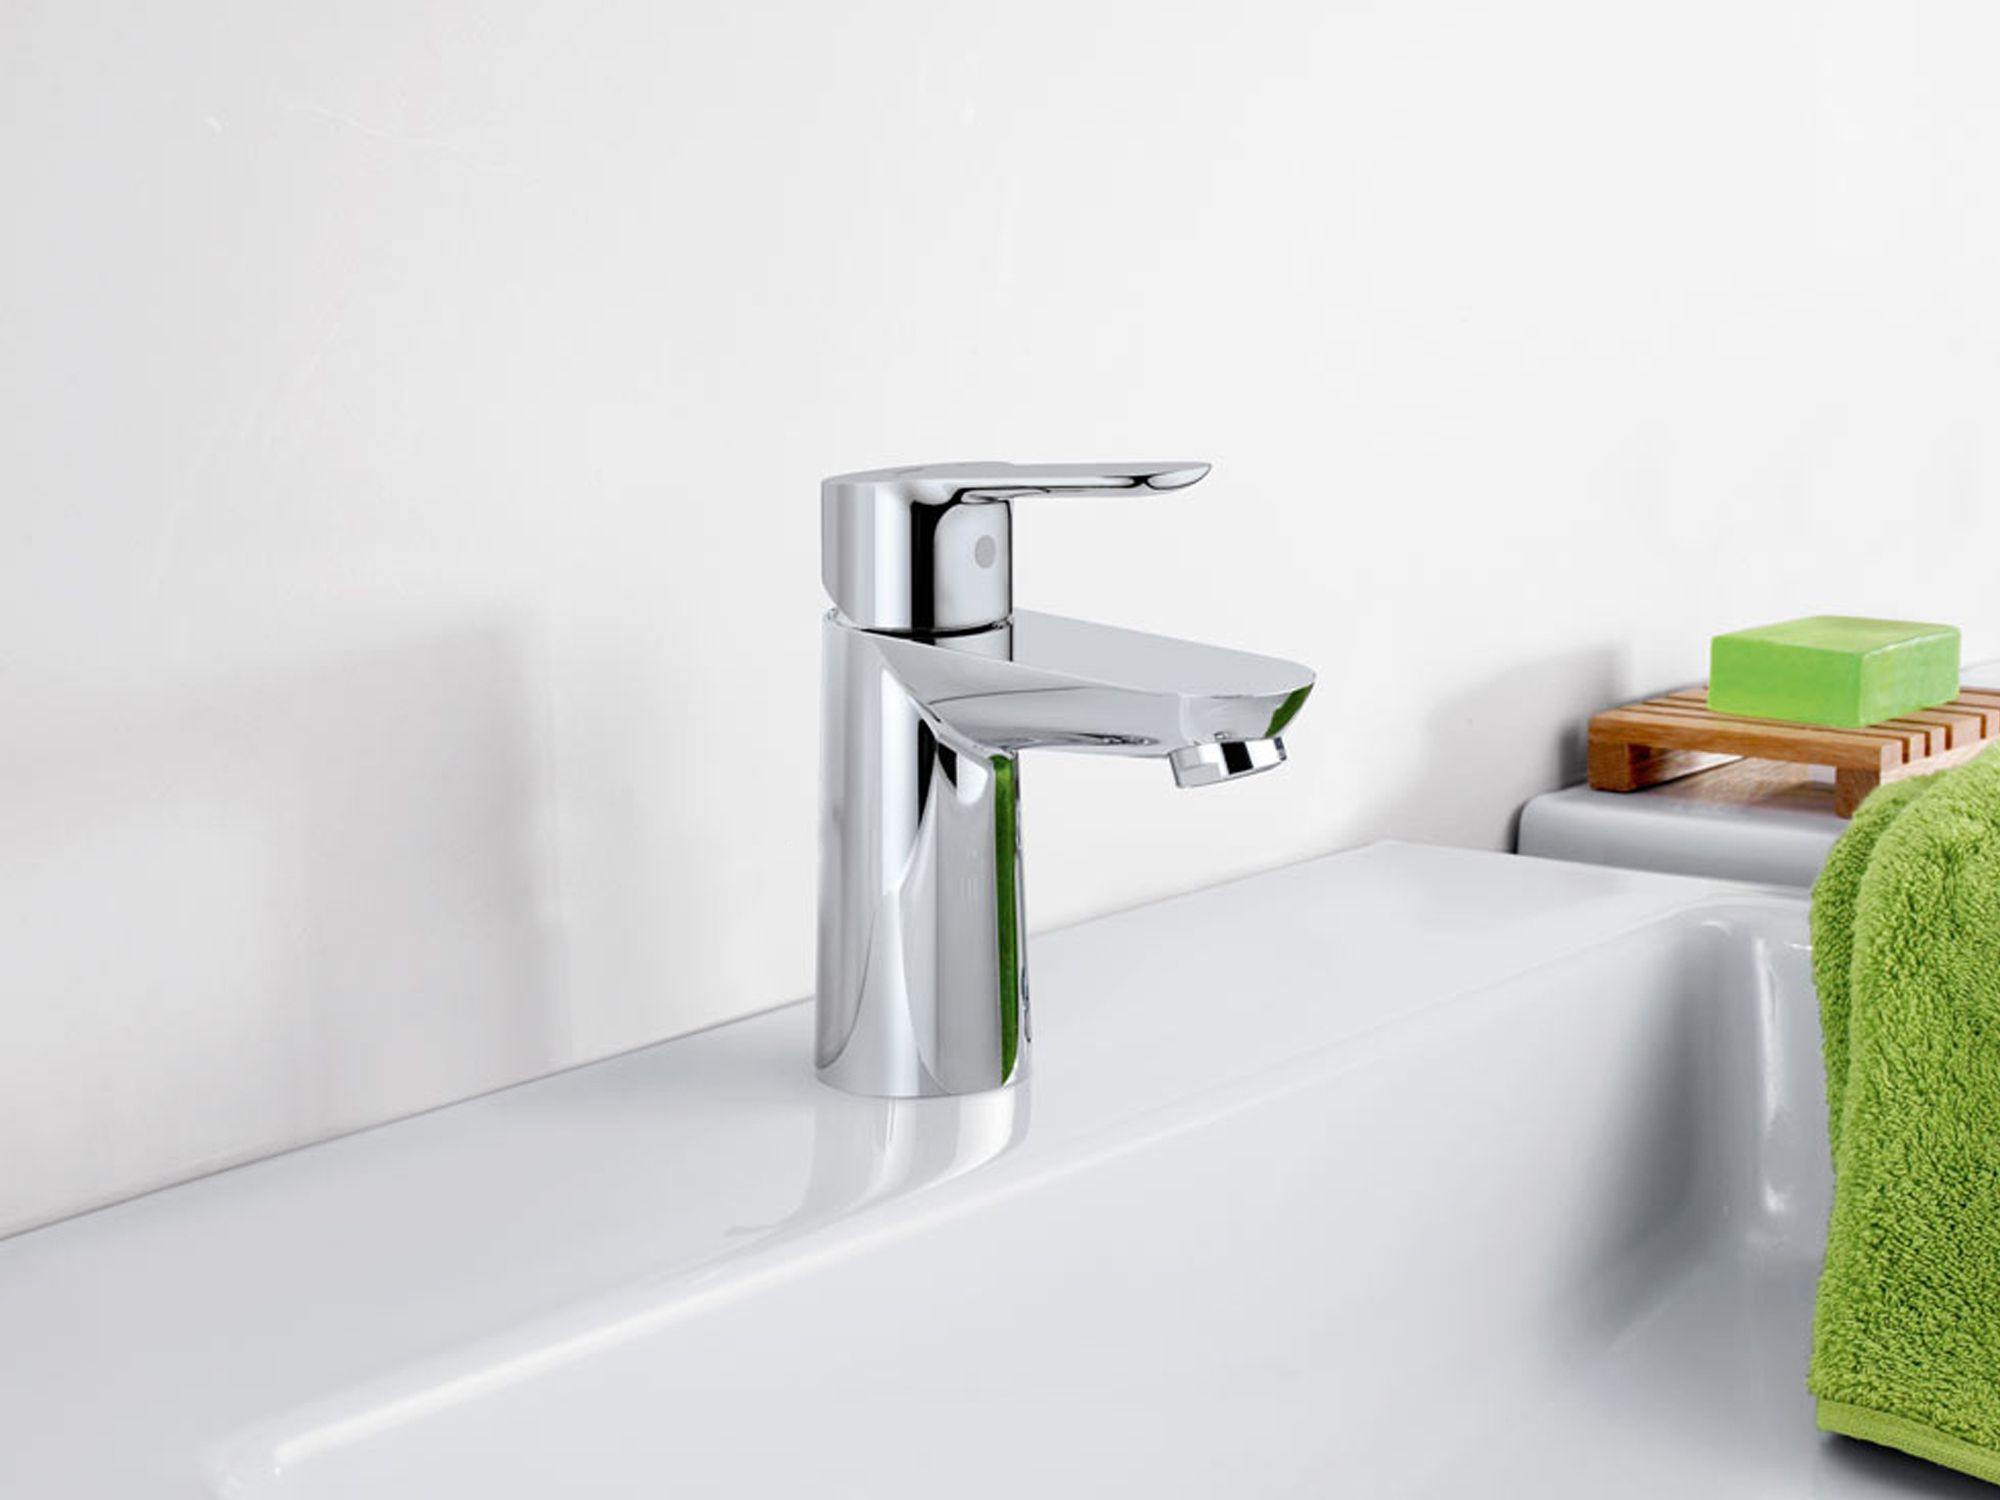 Aixetes Grohe a Barcelona Bauedge lavabo